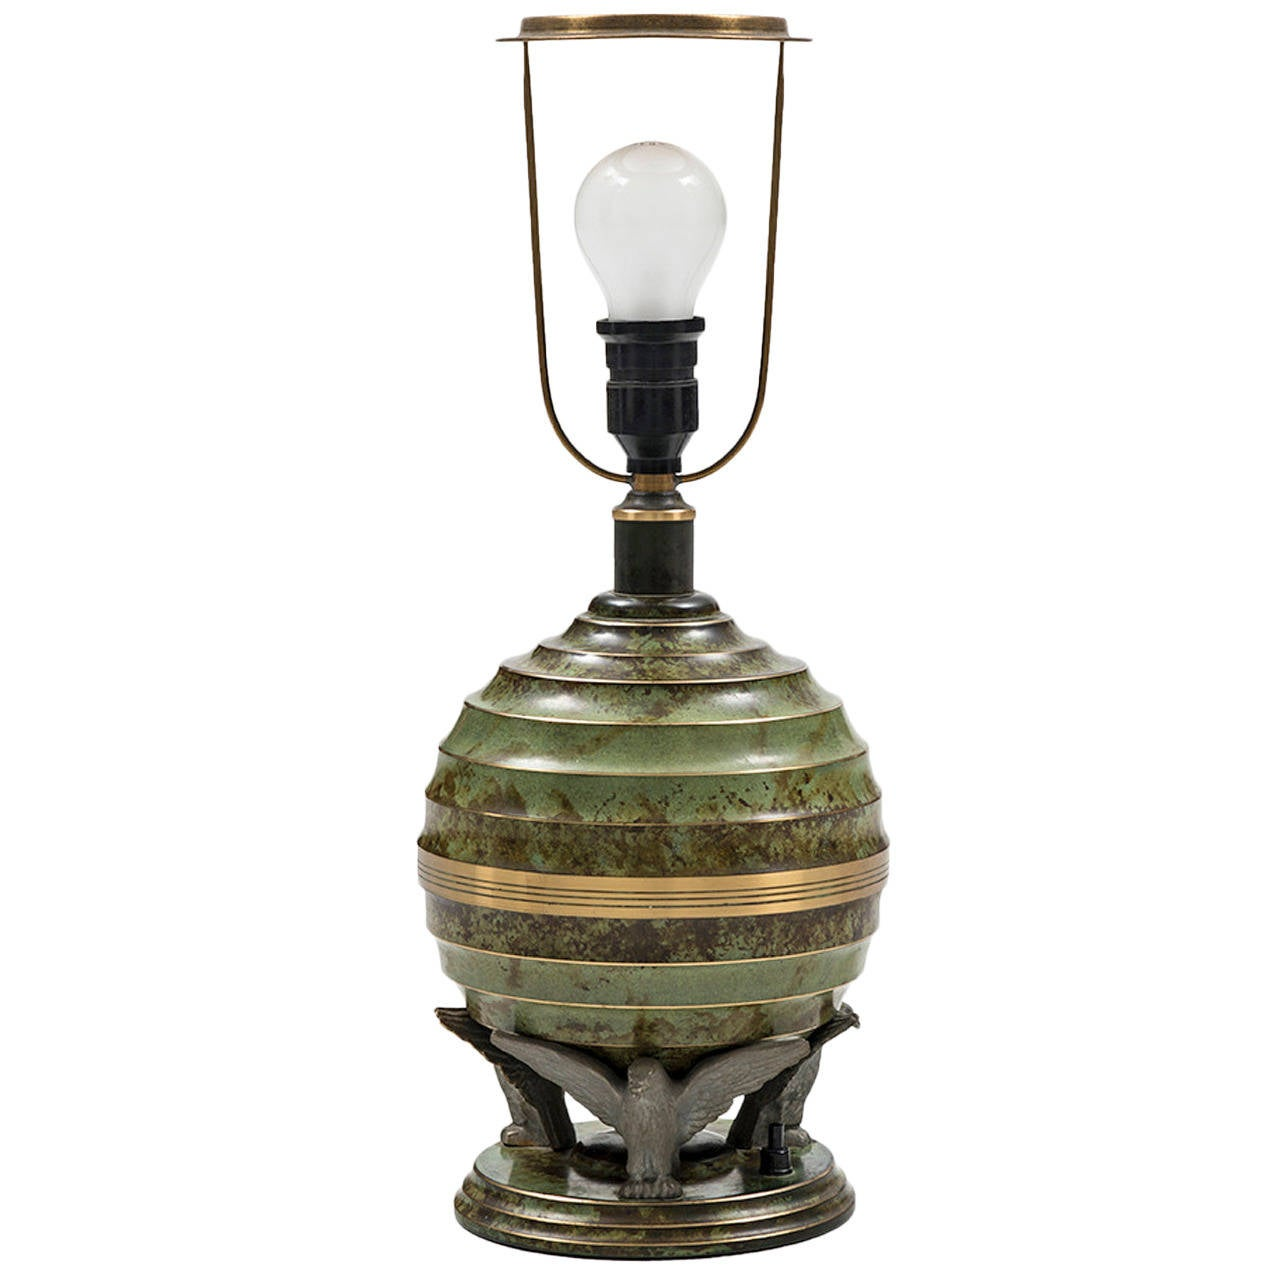 Swedish Art Deco Table Lamp in Bronze and Brass by SVM Handarbete